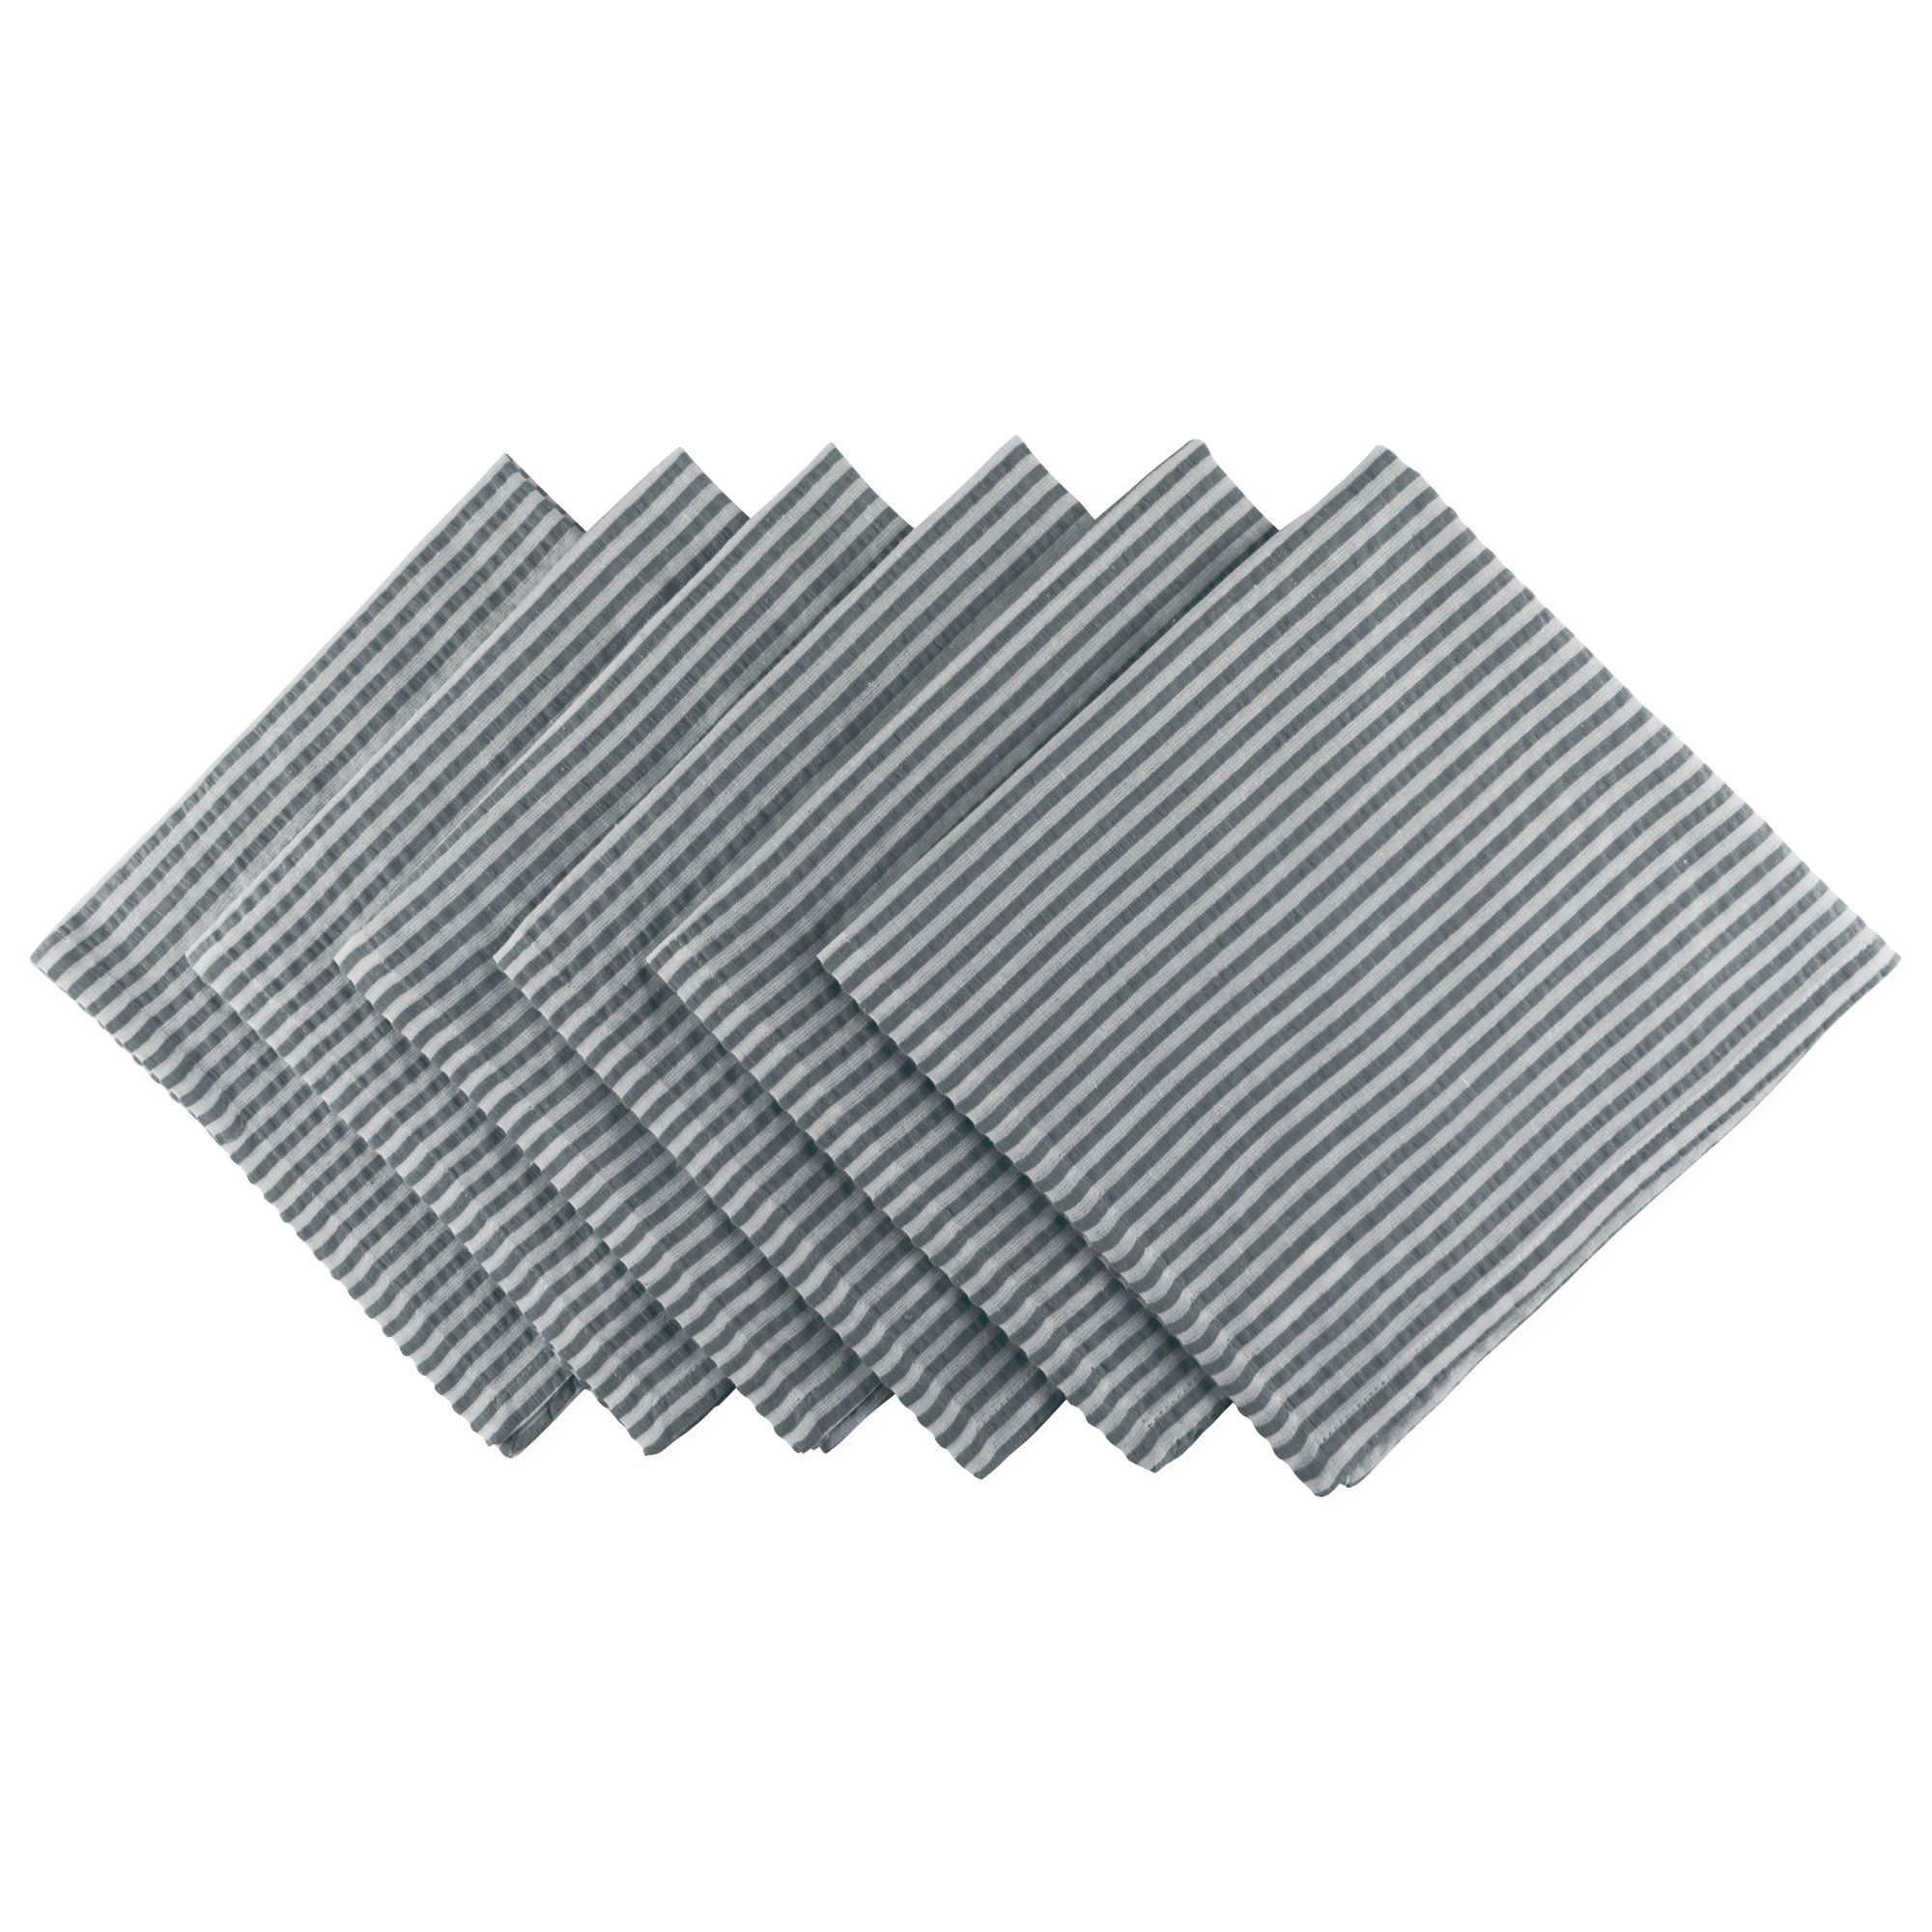 DII Cotton Seersucker Striped Napkin for Brunch, Weddings, Showers, Parties and Everyday Use, 20 x 20'', Mineral Gray and White by DII (Image #1)